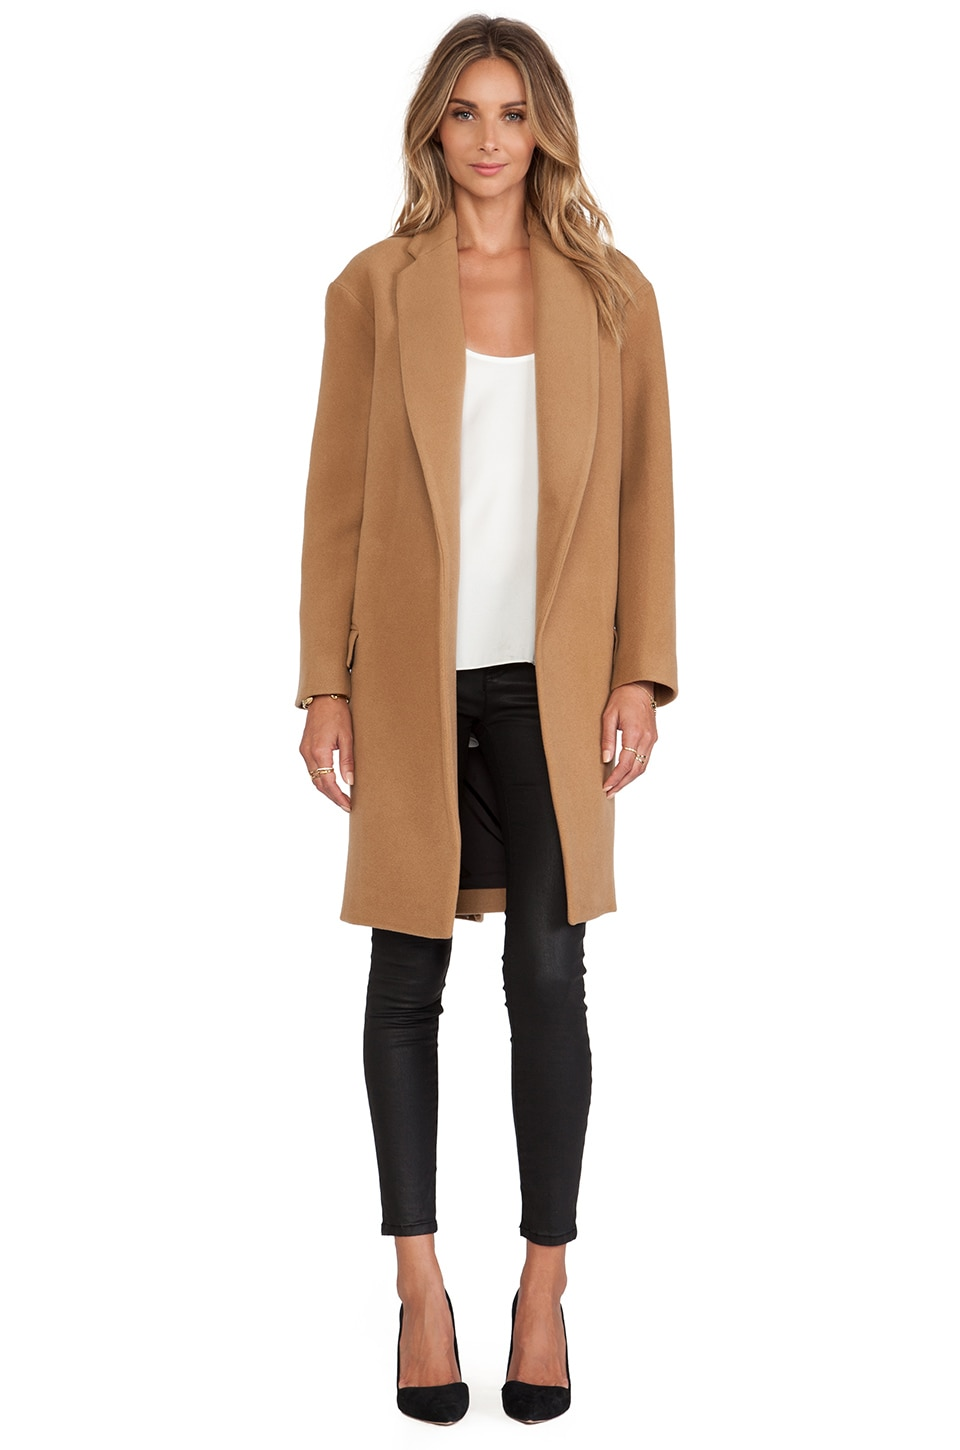 NICHOLAS Felted Wool Full Length Coat in Camel